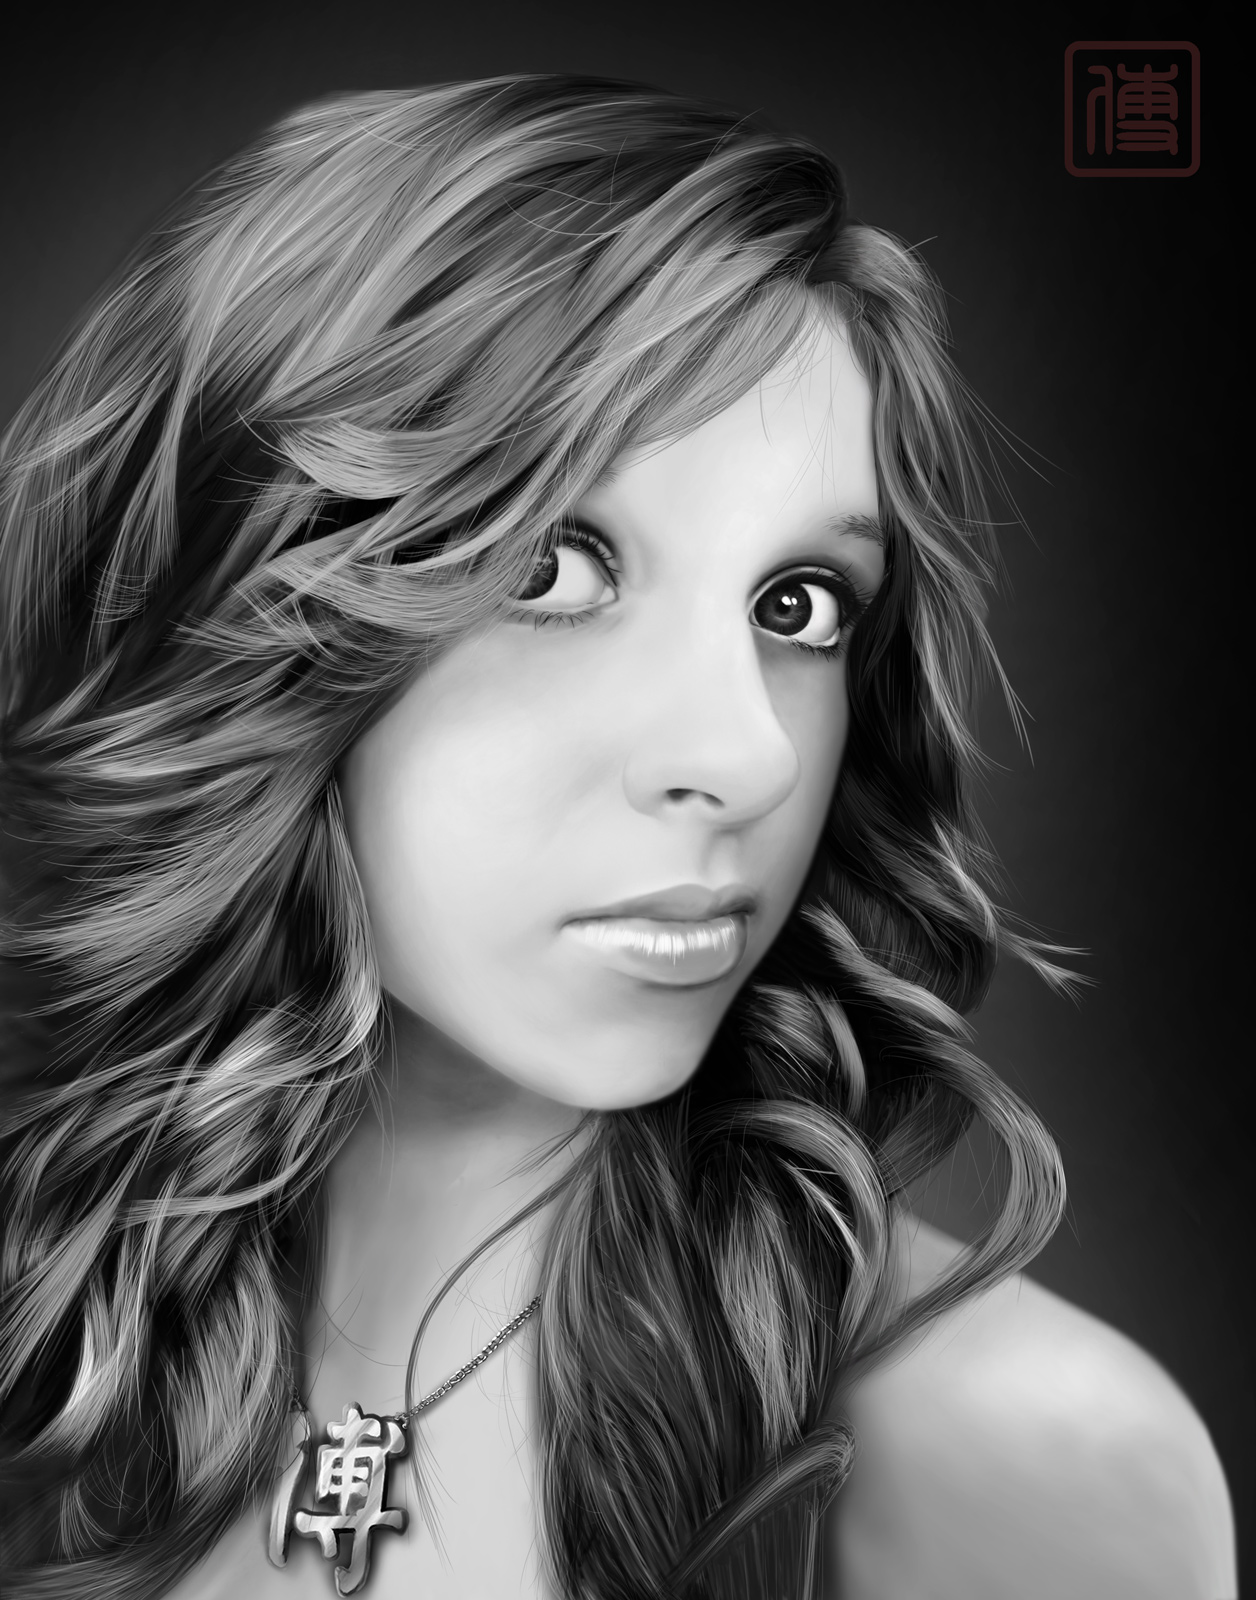 morgan digital painting final by JoeDieBestie